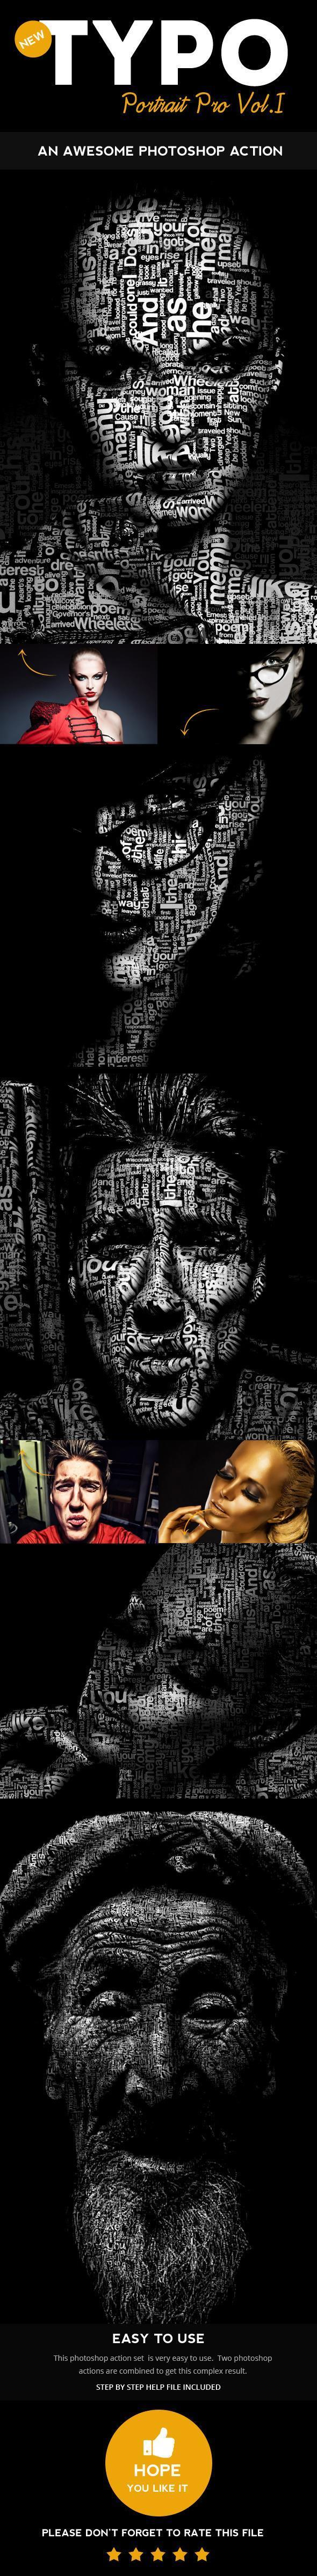 Typographic Portrait Photoshop Action Generator